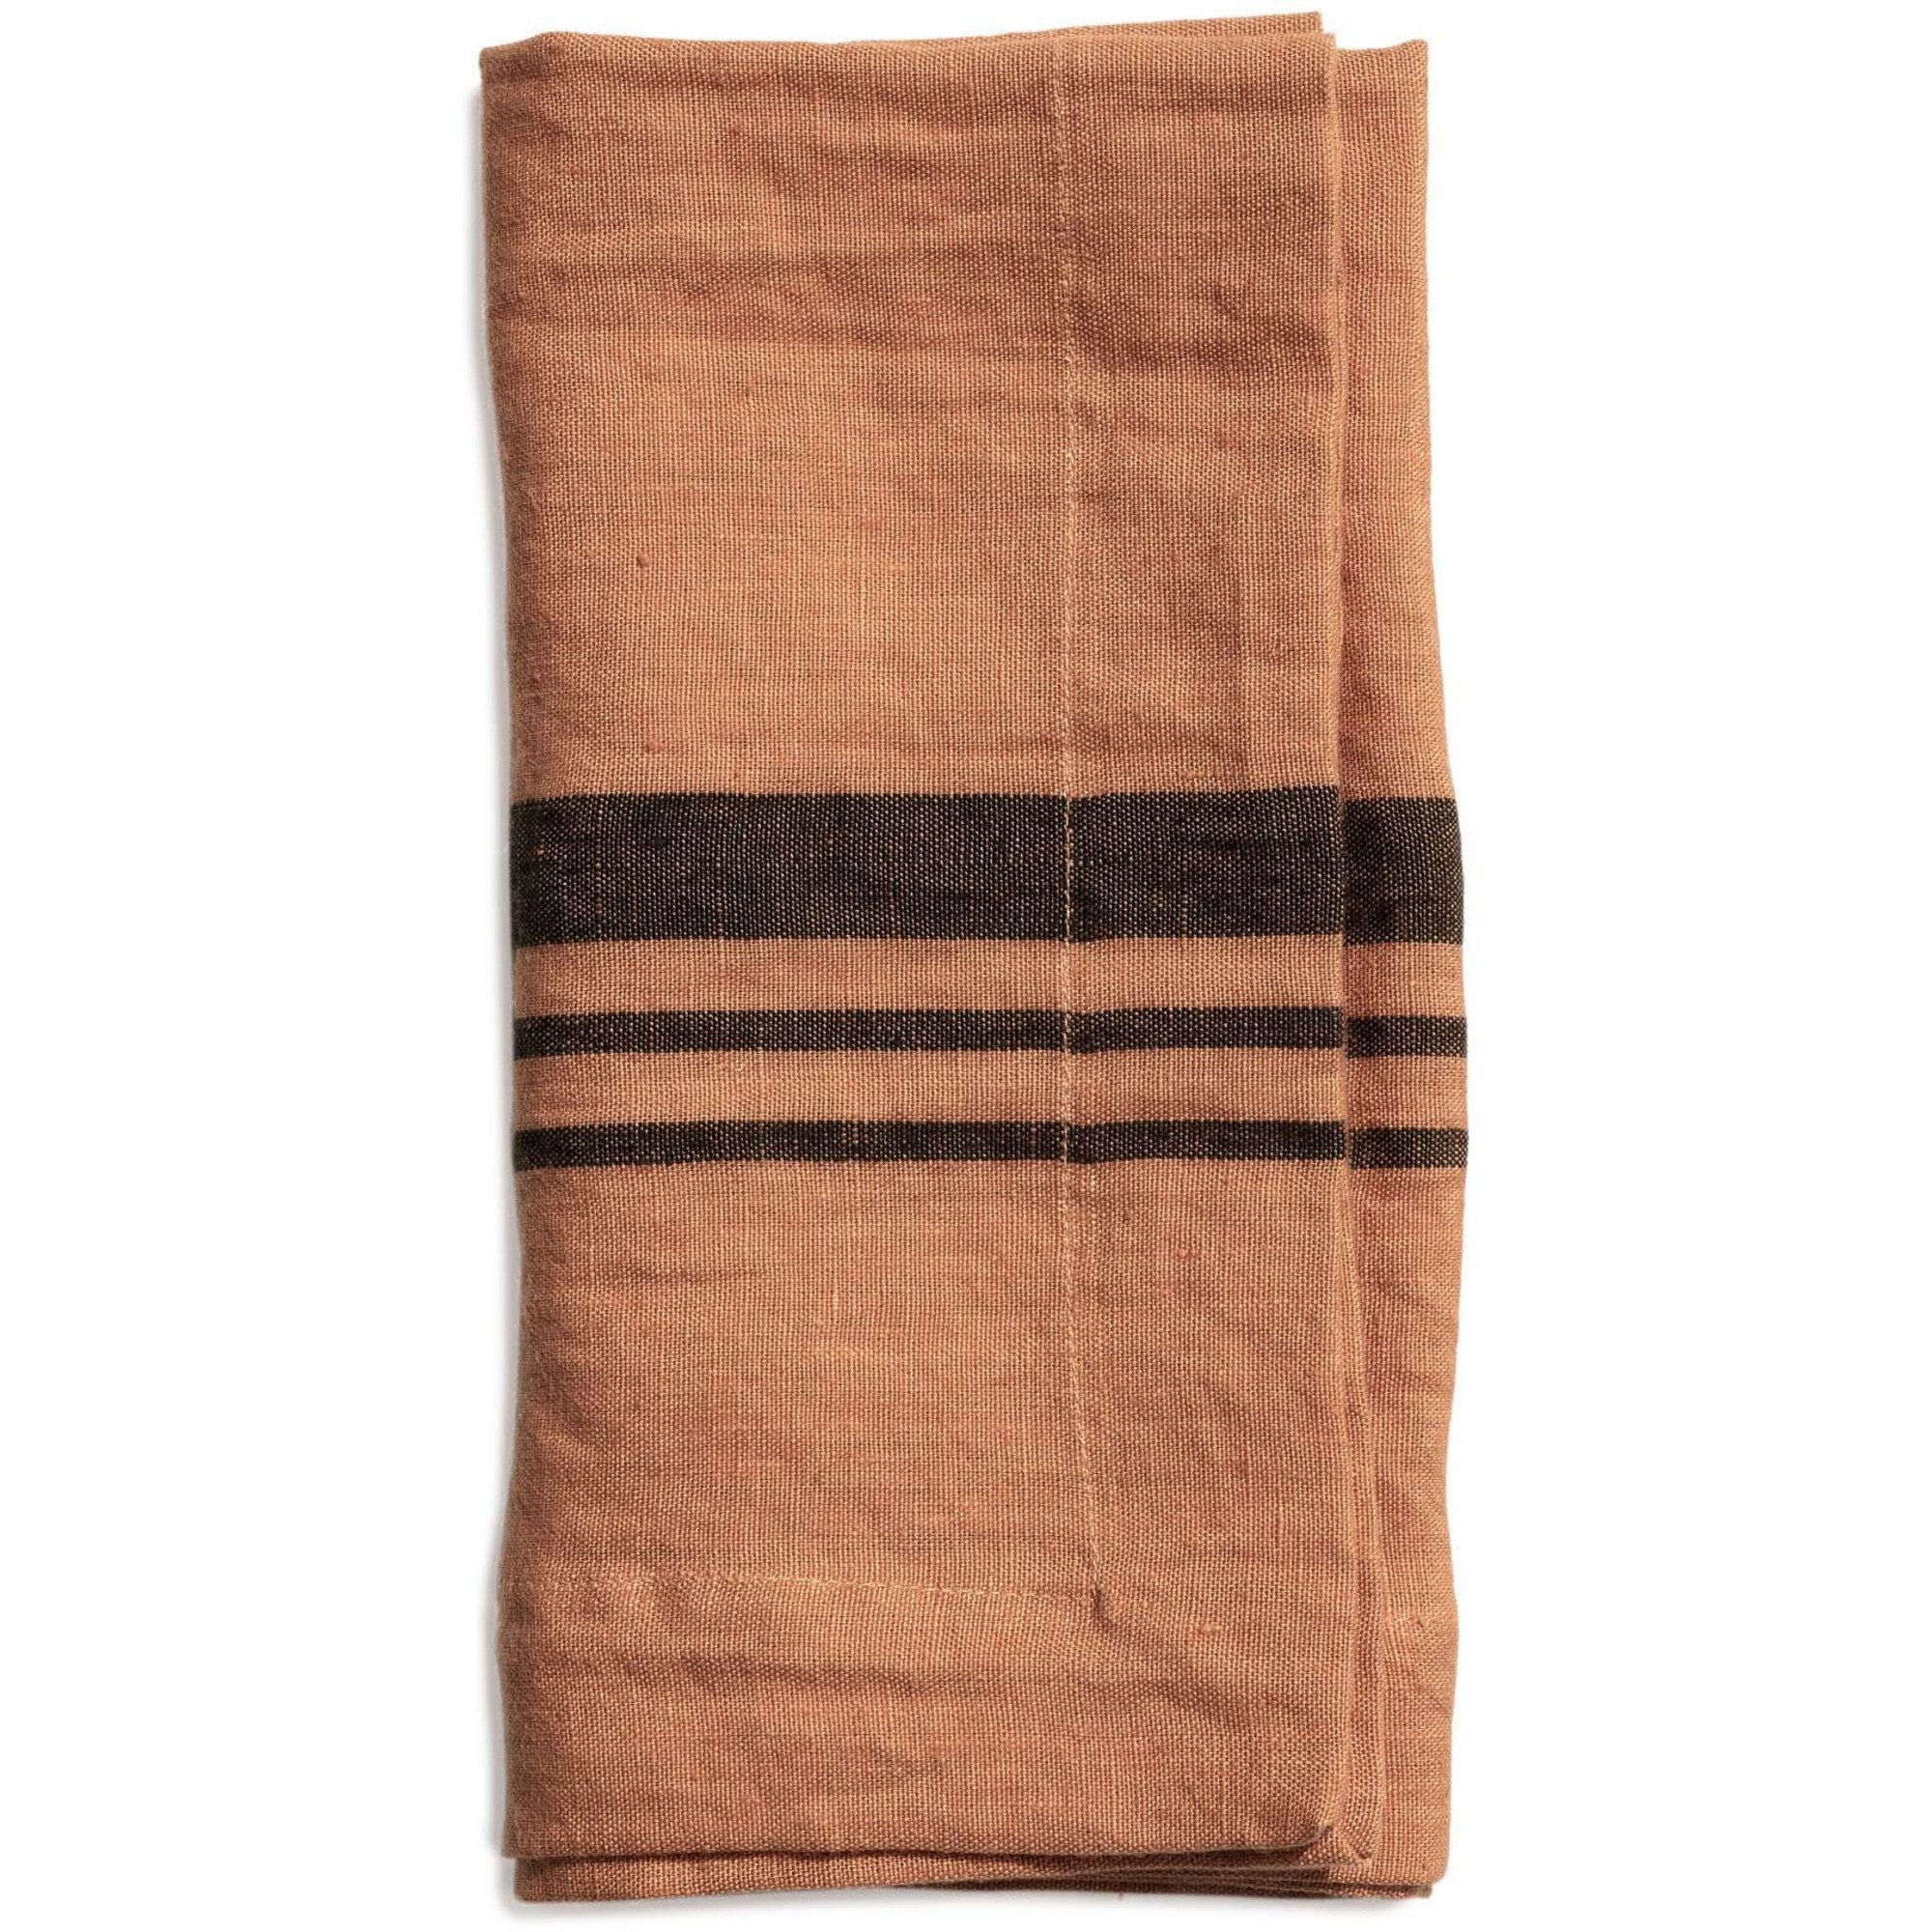 Top Drawer Servett LITTLEWOOD i linné stripe Dry Terracotta 4-pack